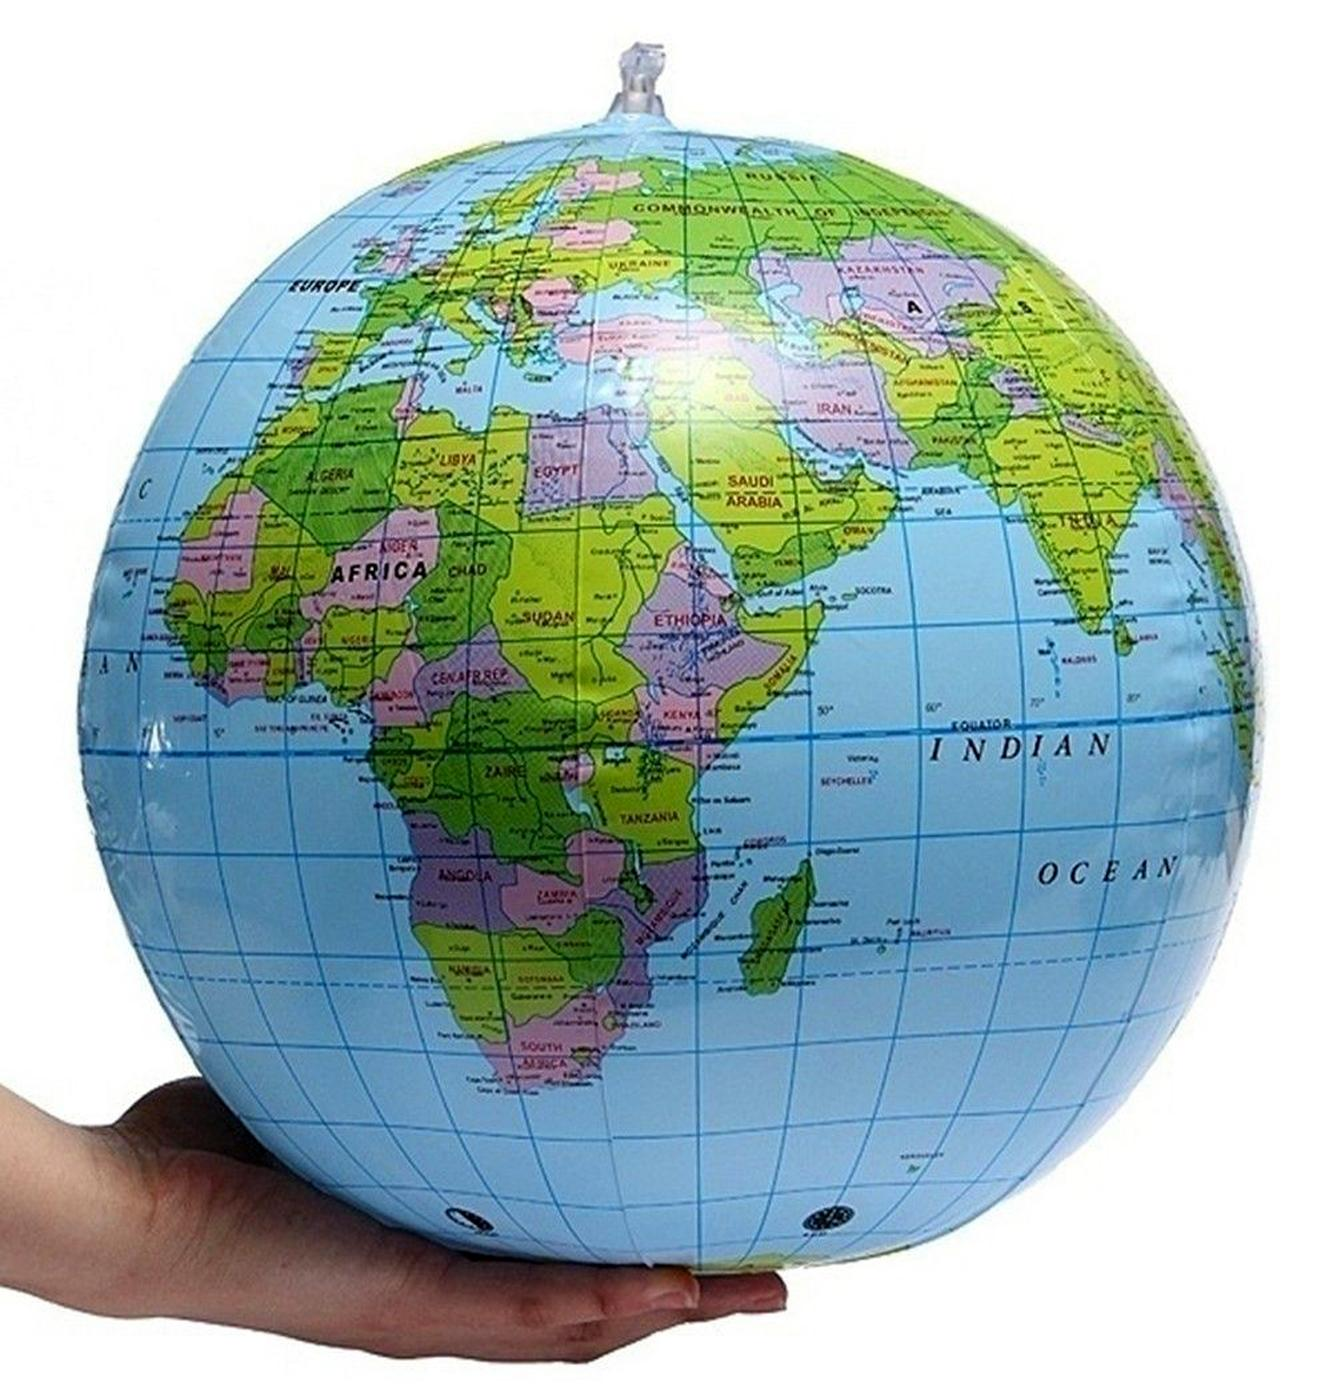 Geography puzzle toys for sale geography toys online brands 16 inch inflatable globe world map geography ball educational tool and a toy gumiabroncs Image collections